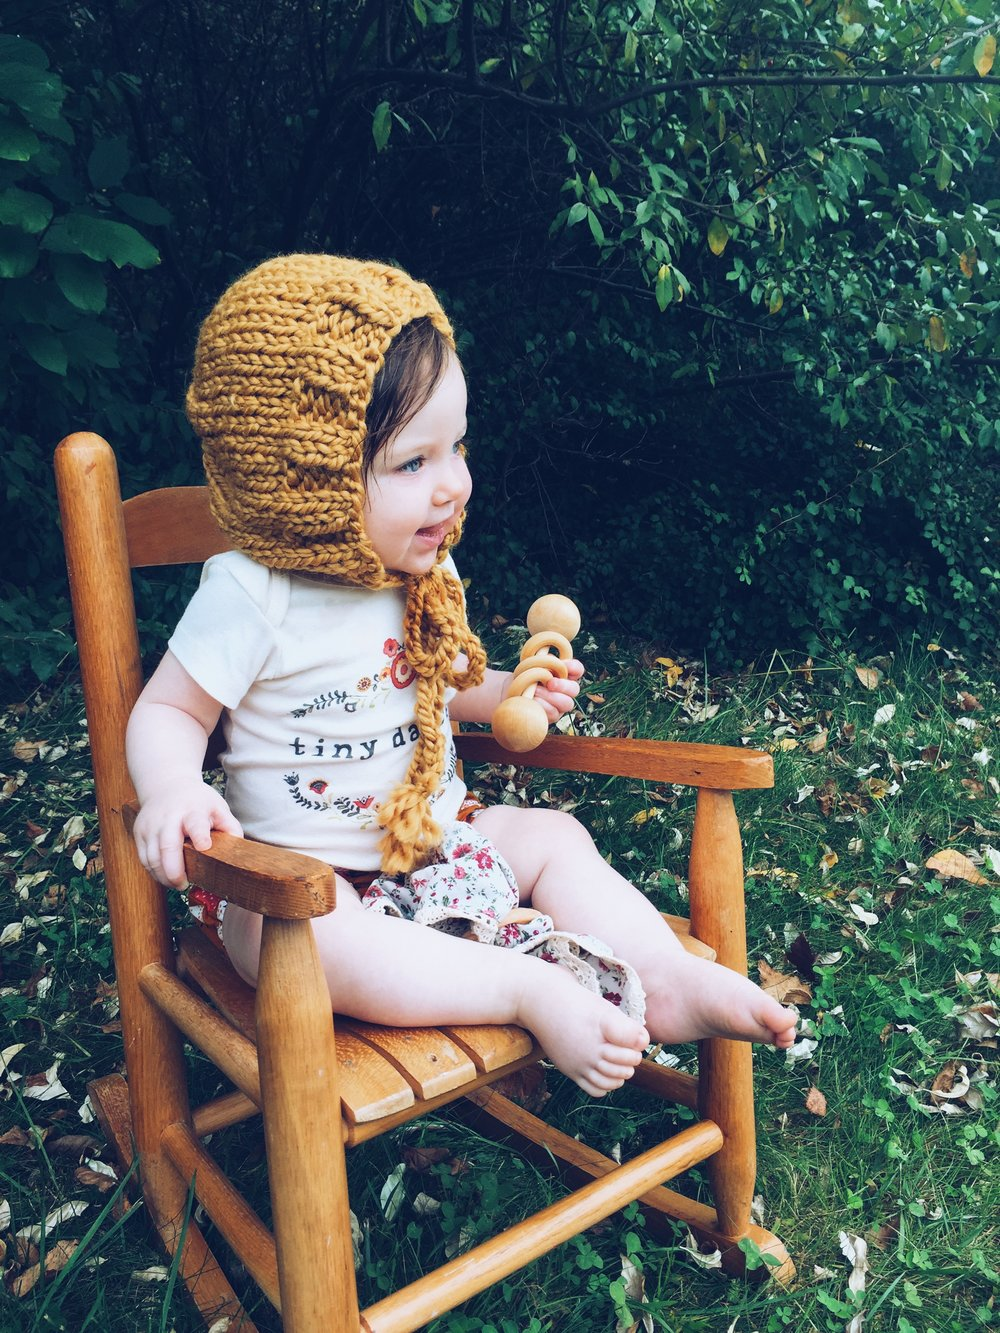 Mustard Yellow Knit Baby Bonnet by Bluecorduroy.etsy.com